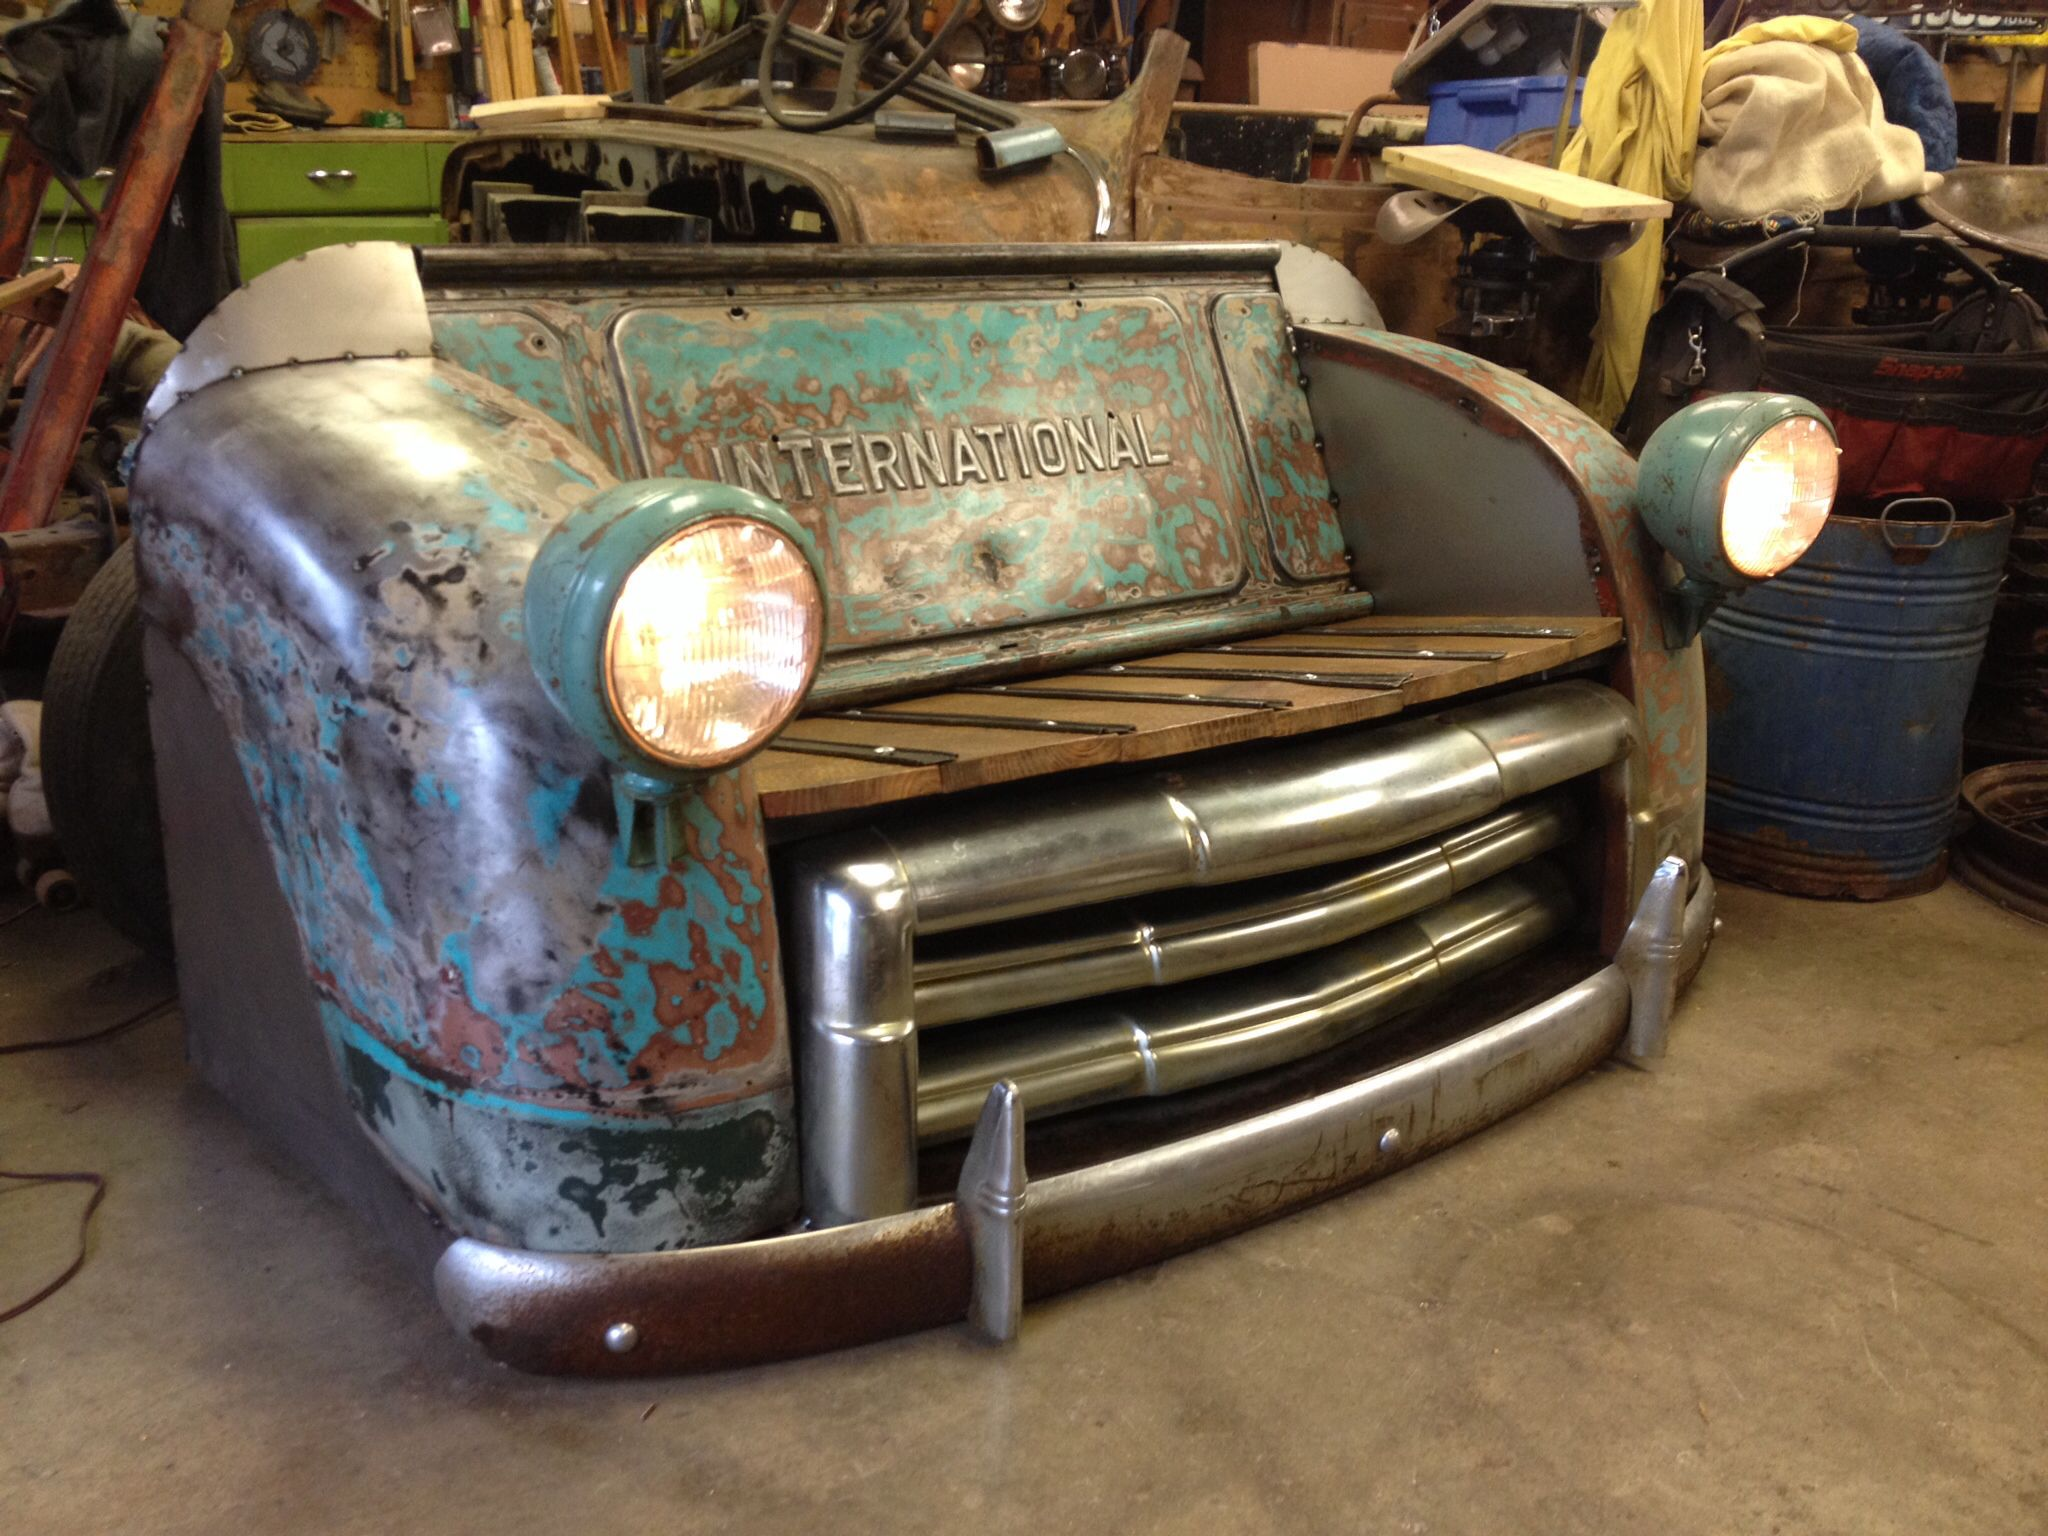 New international bench with gmc grill and chevy bumper and working ...